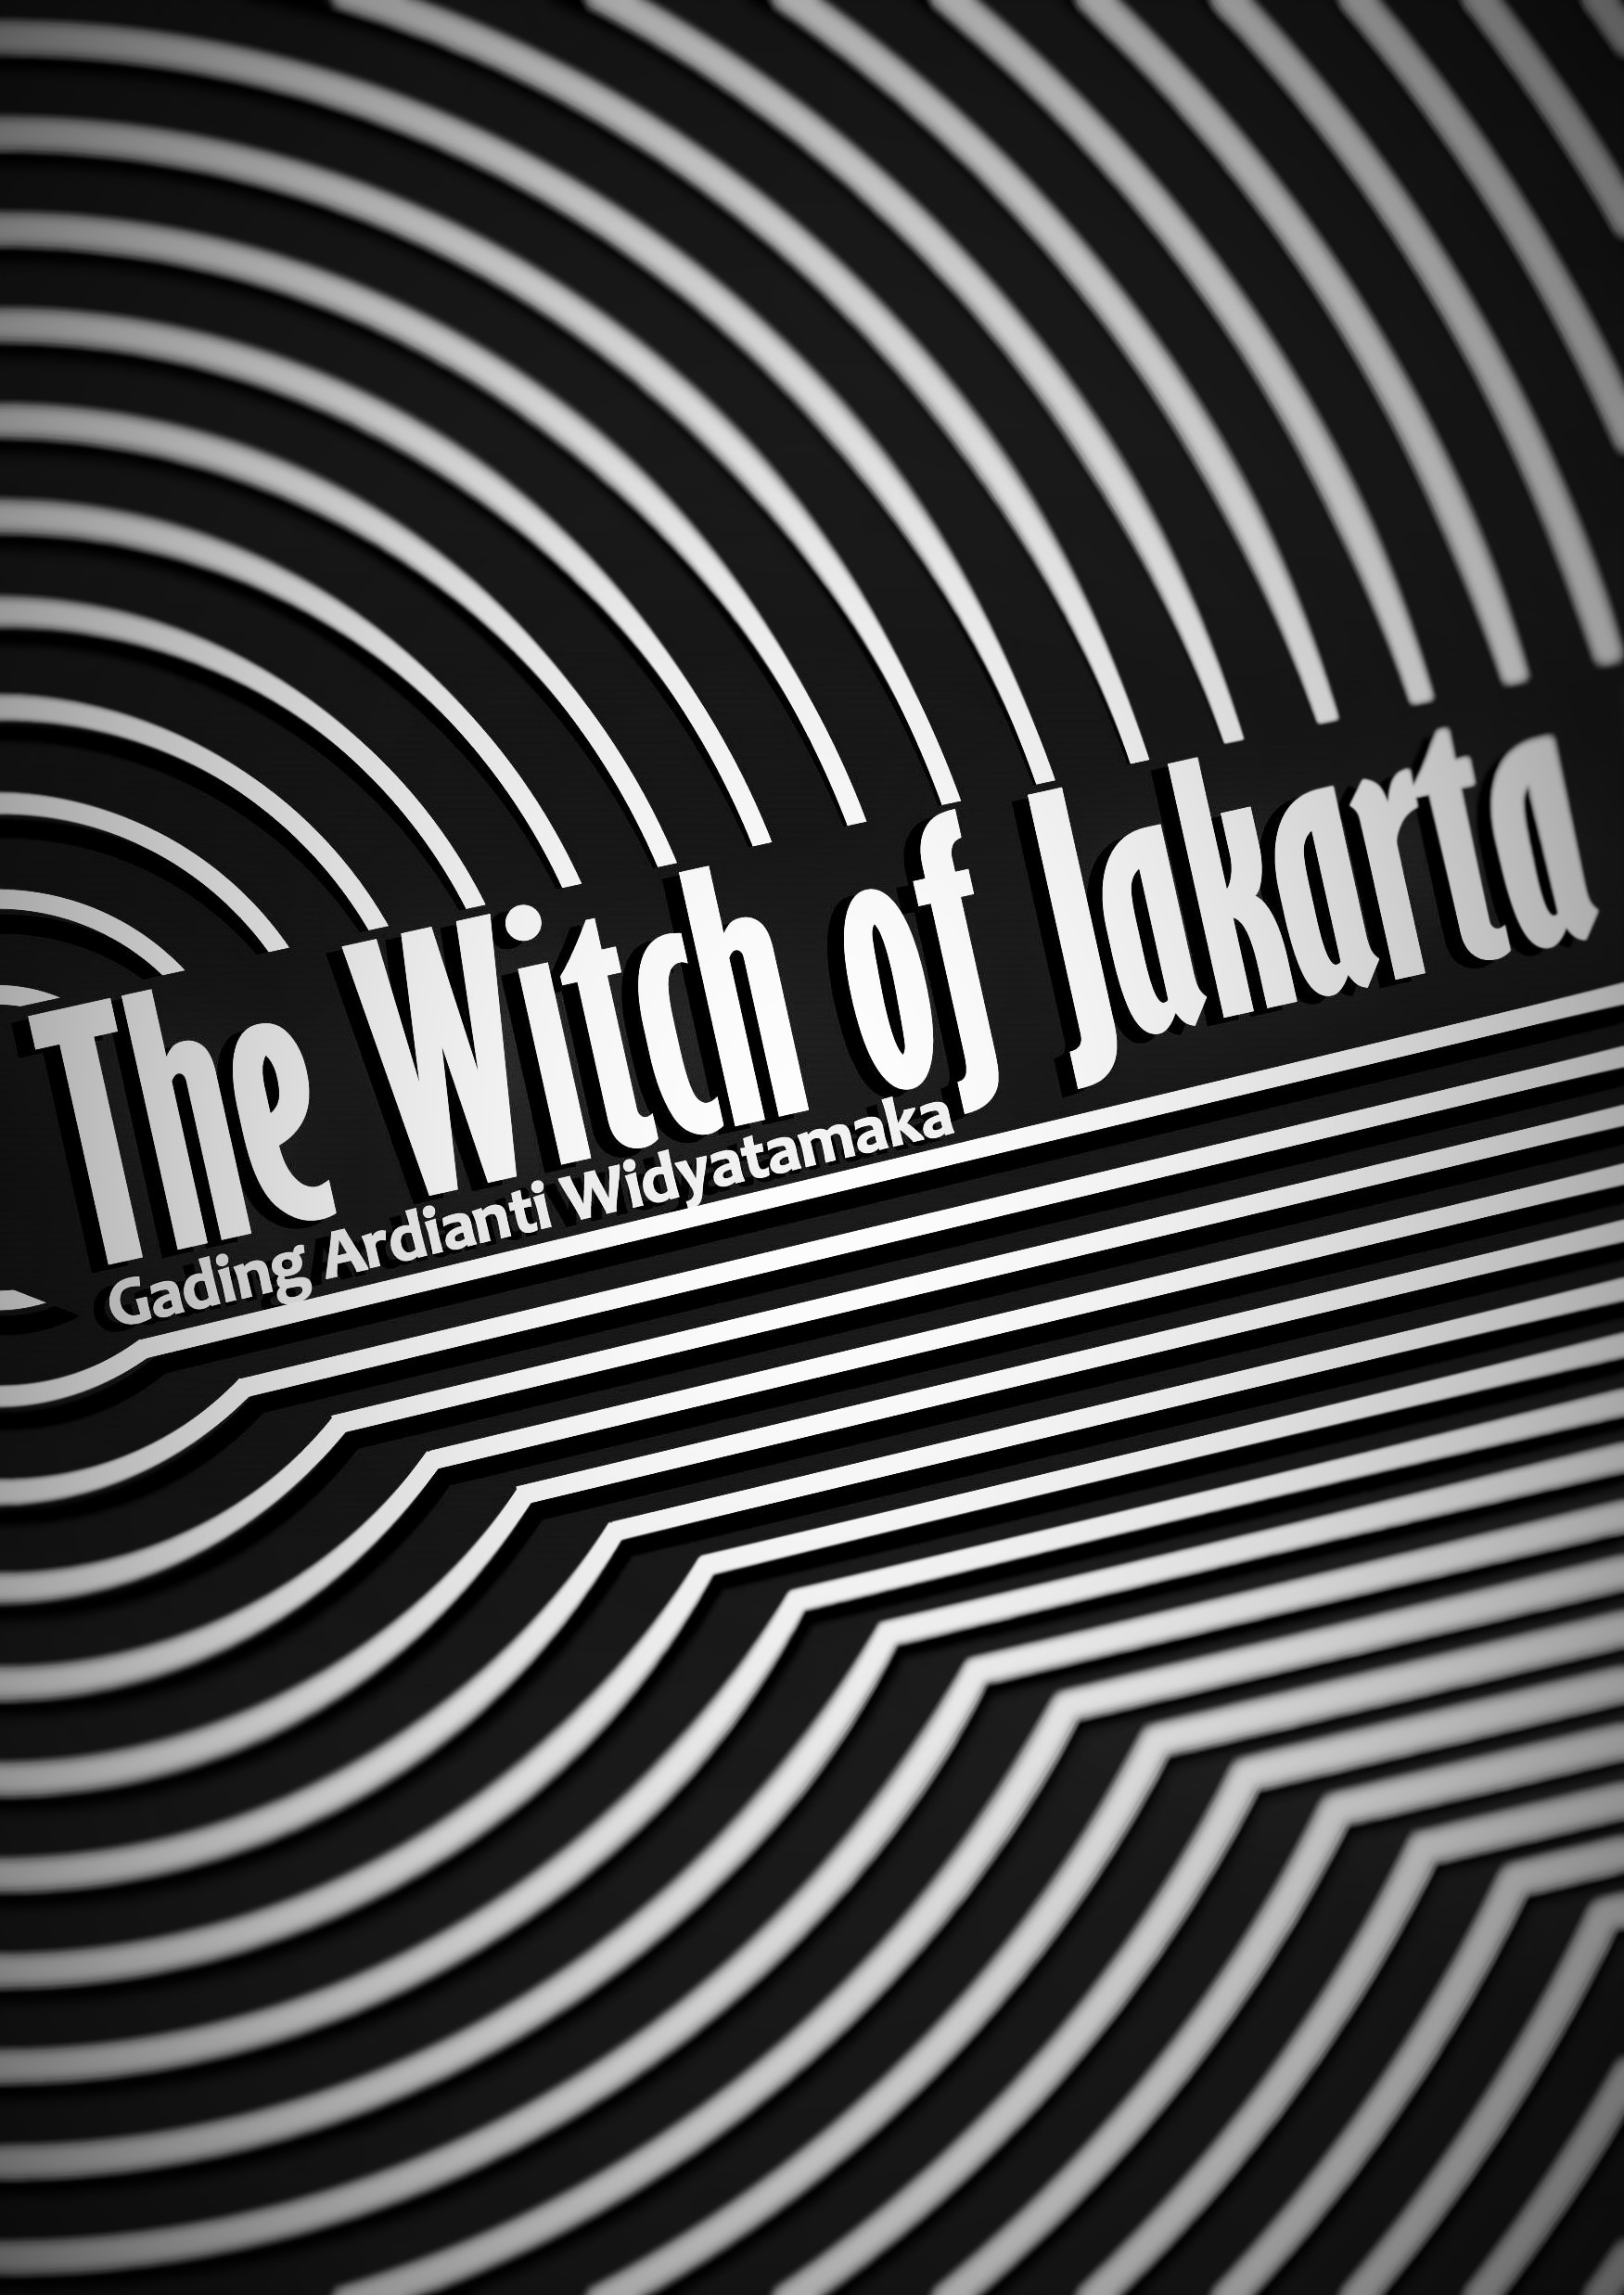 The Witch of Jakarta